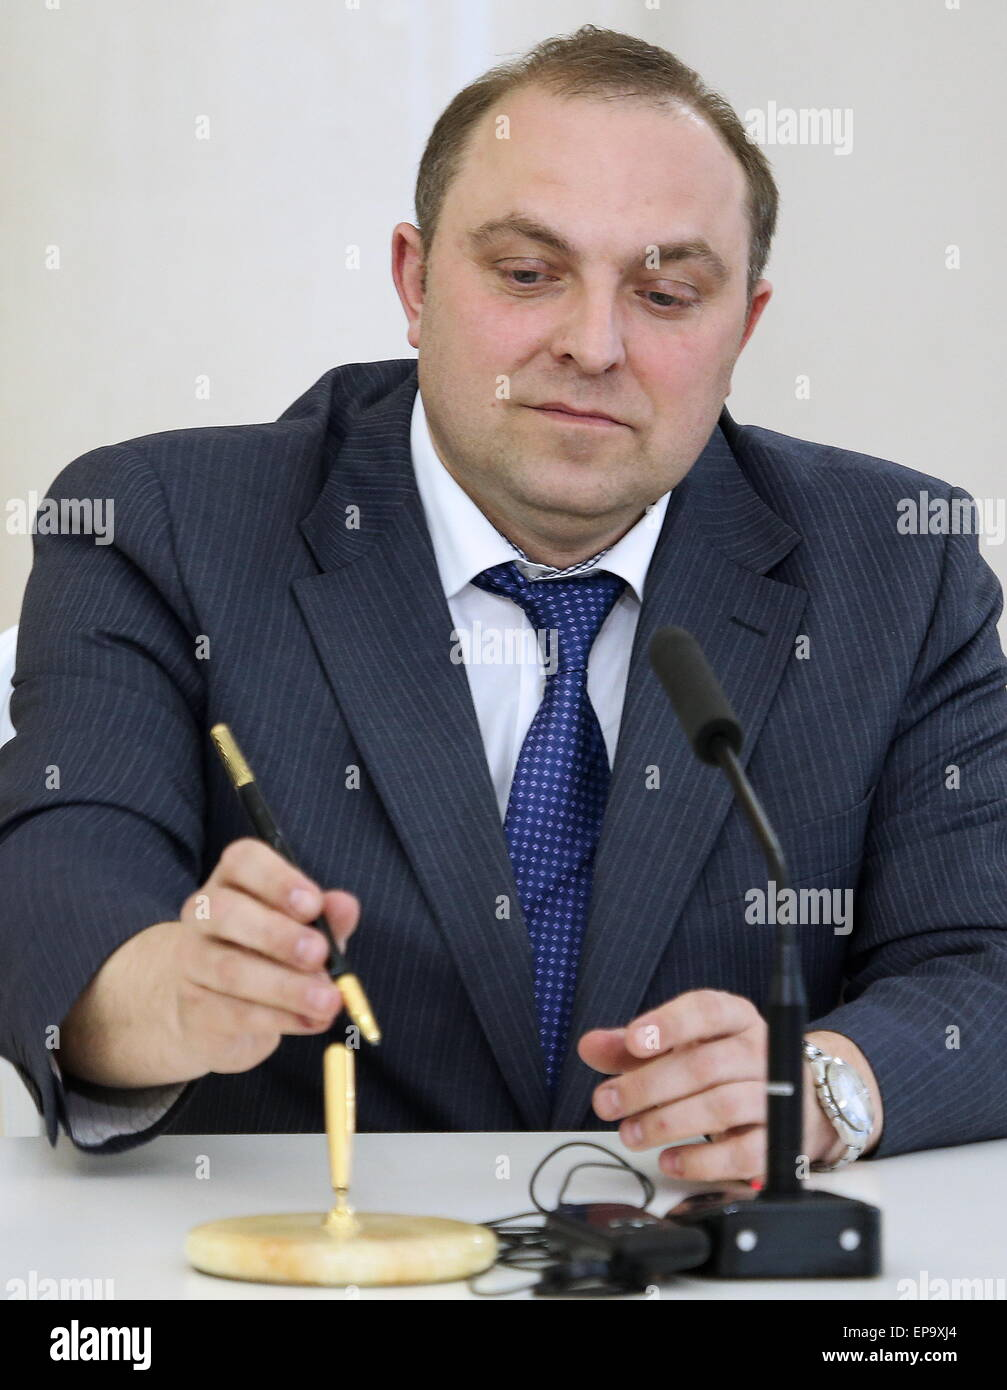 Moscow, Russia. 14th May, 2015. Moscow Metro head Dmitry Pegov looks on during the signing of a cooperation agreement Stock Photo